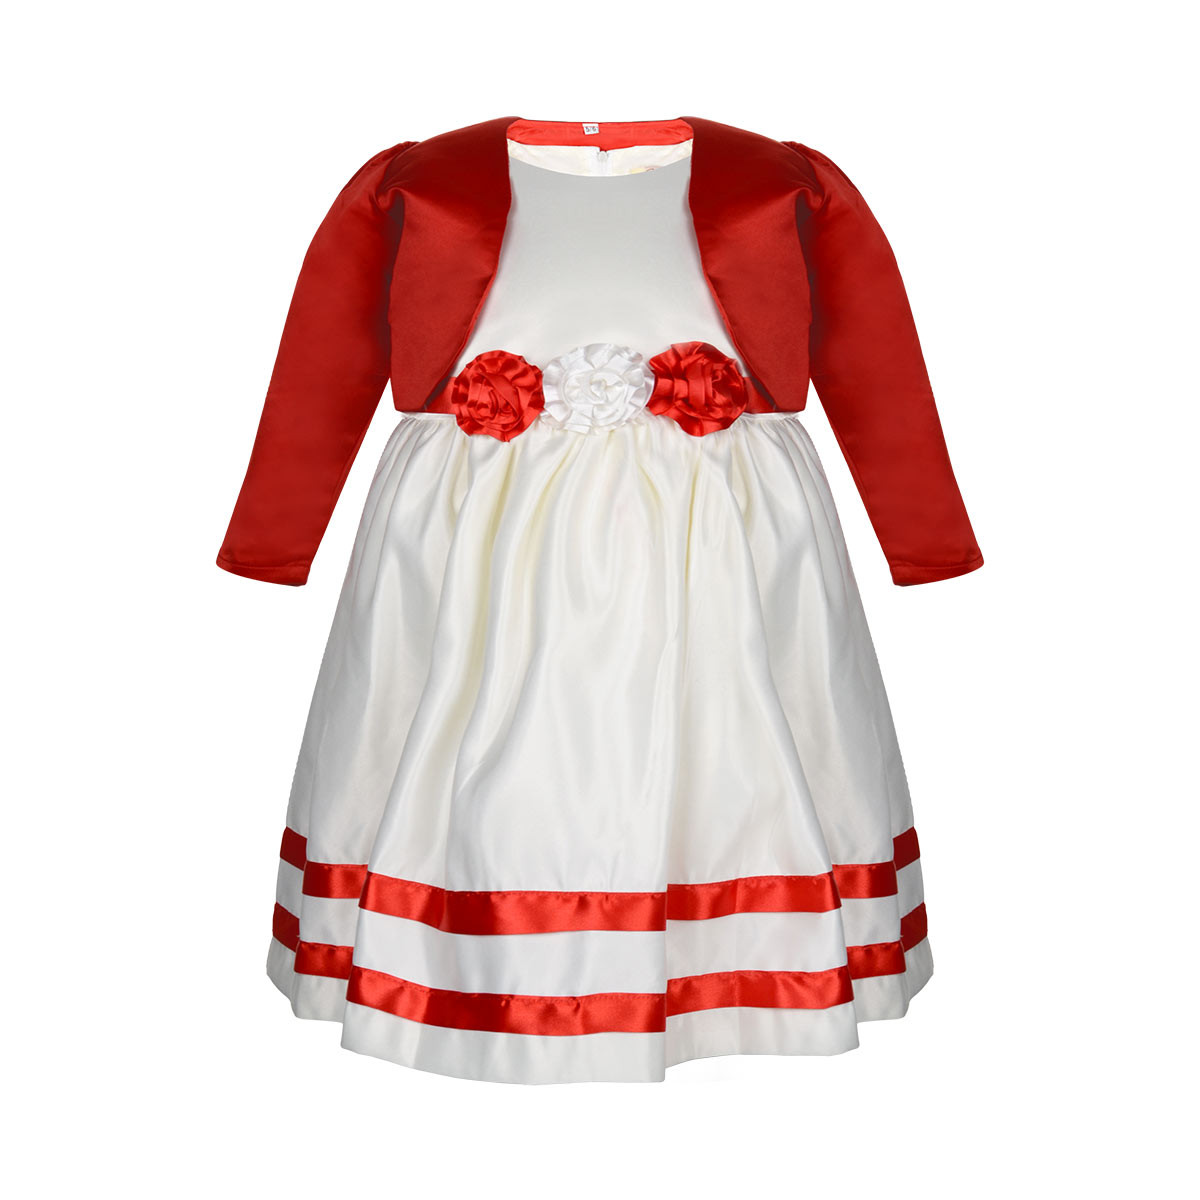 Girls Fabric Floral Wedding Dress With Shrug Red Cream 3 12 Years